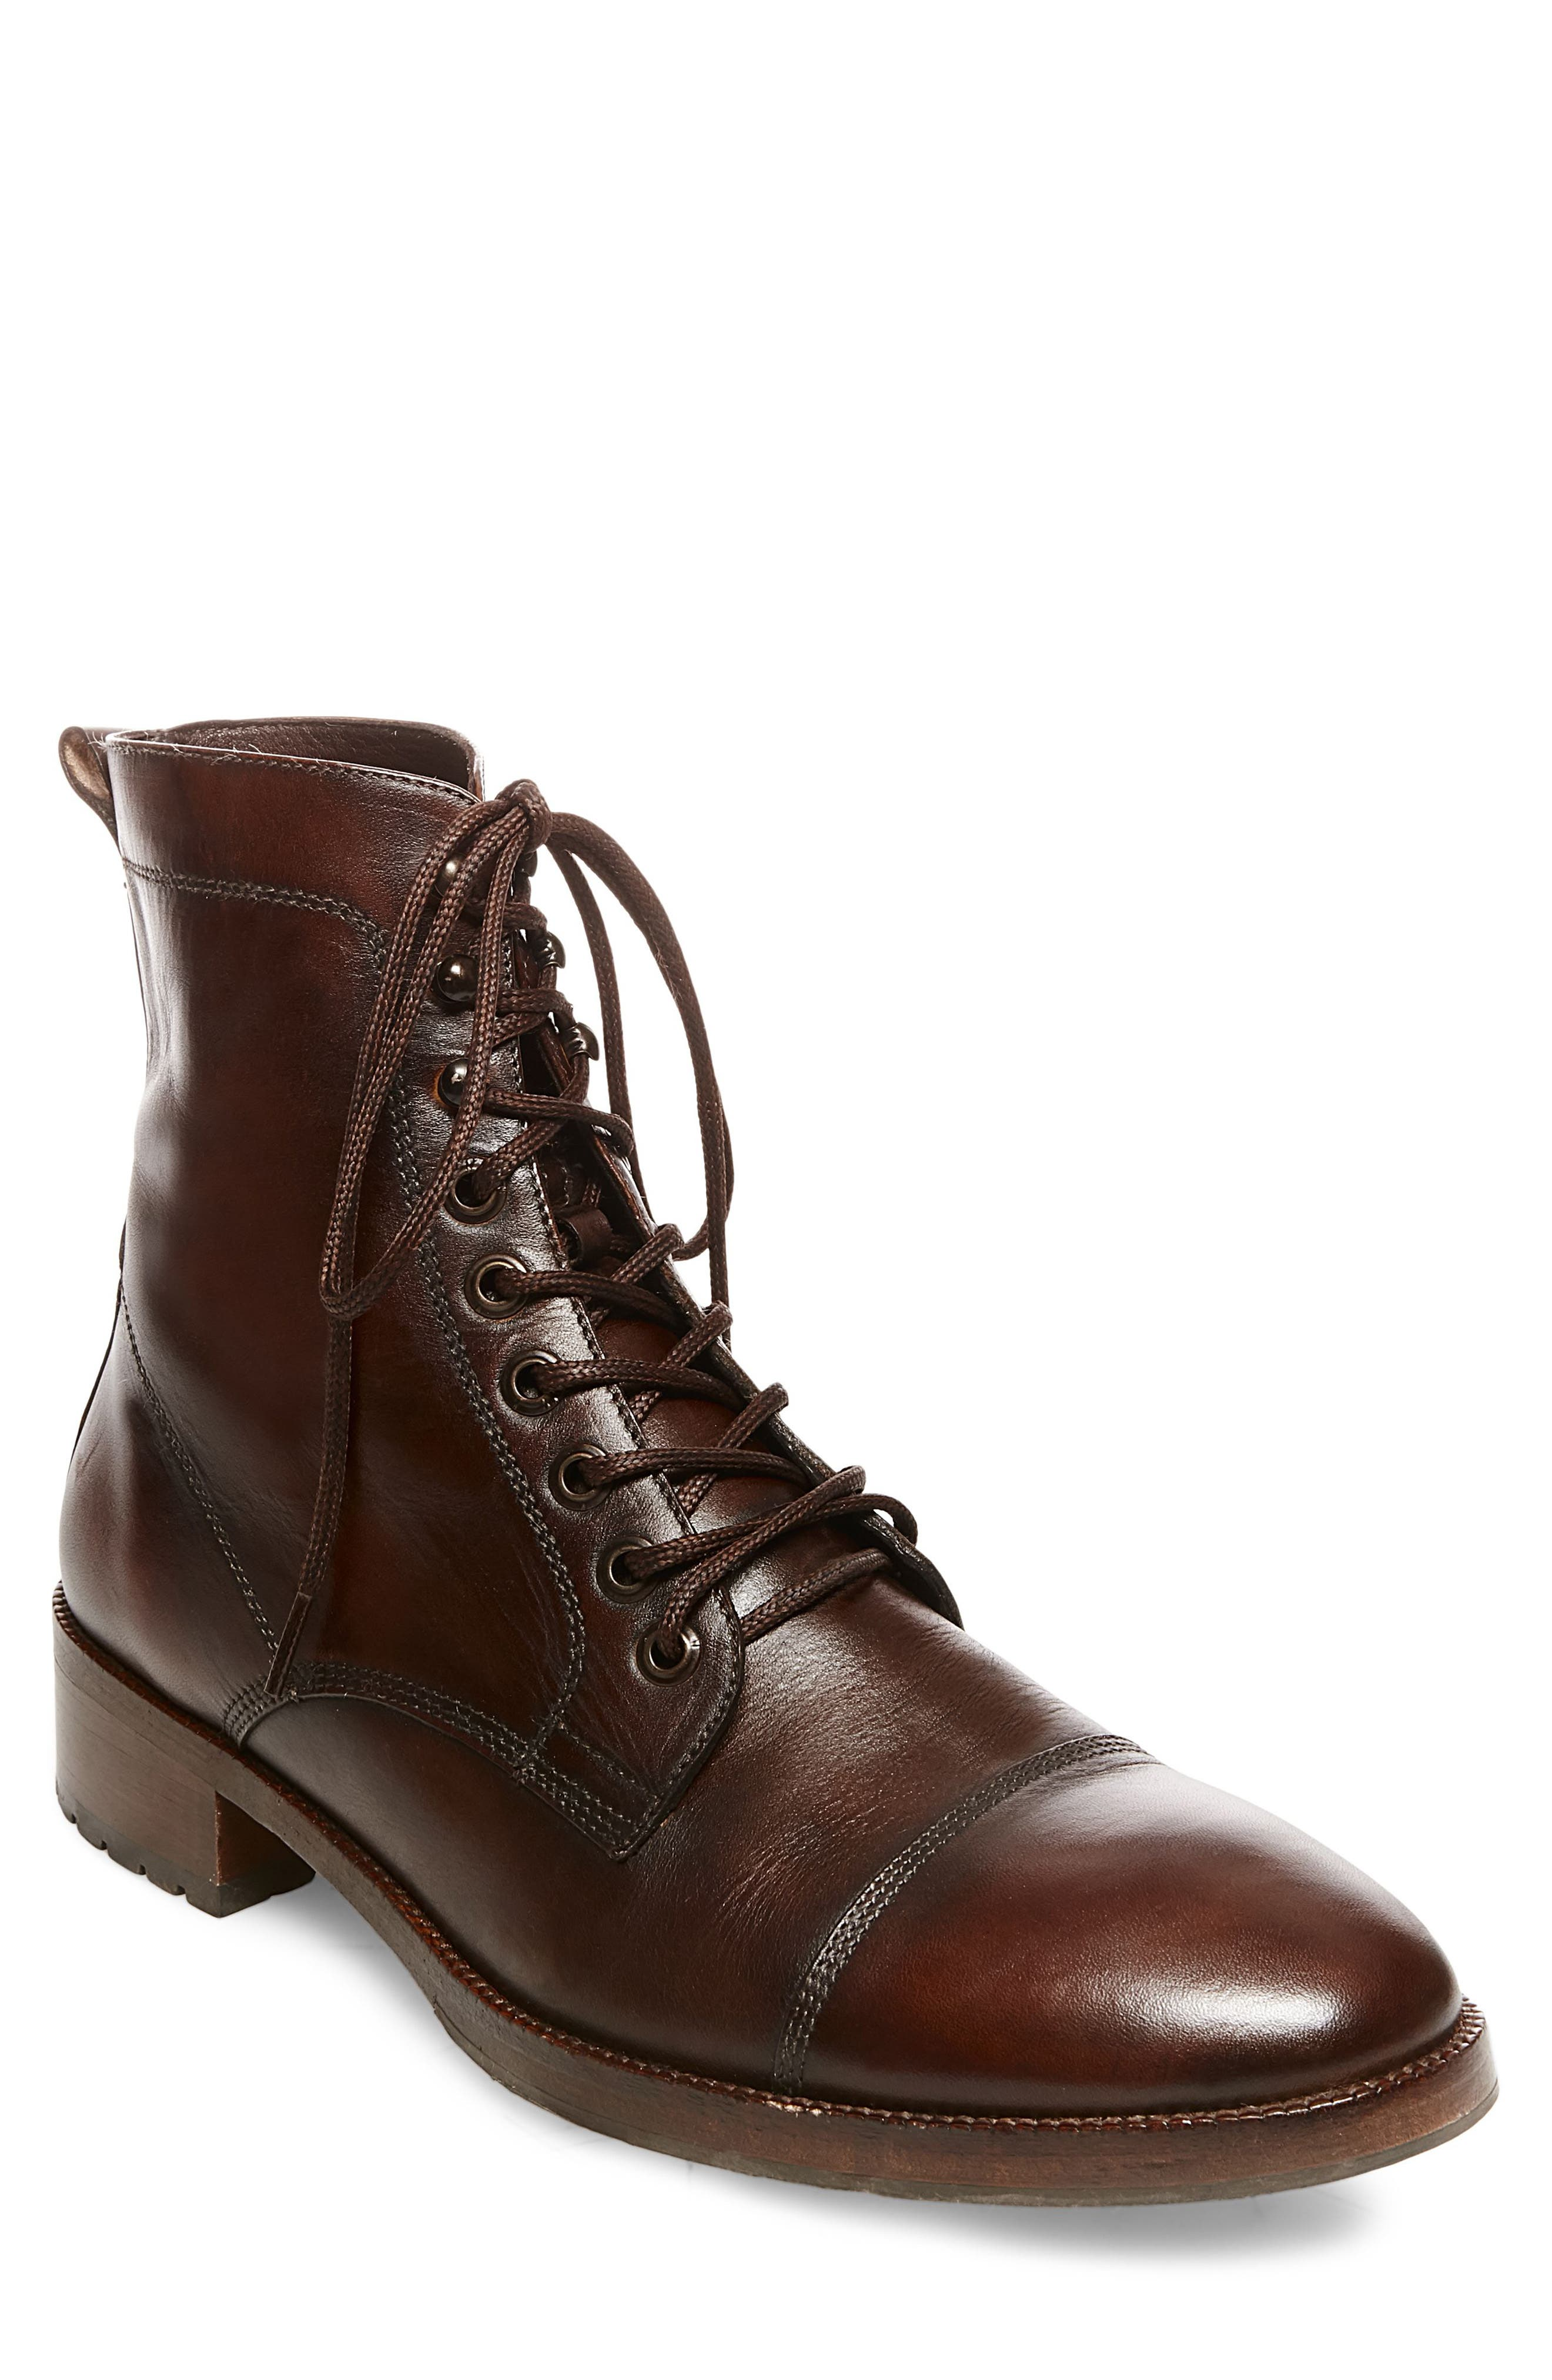 x GQ Ted Cap Toe Boot,                         Main,                         color, Brown Leather